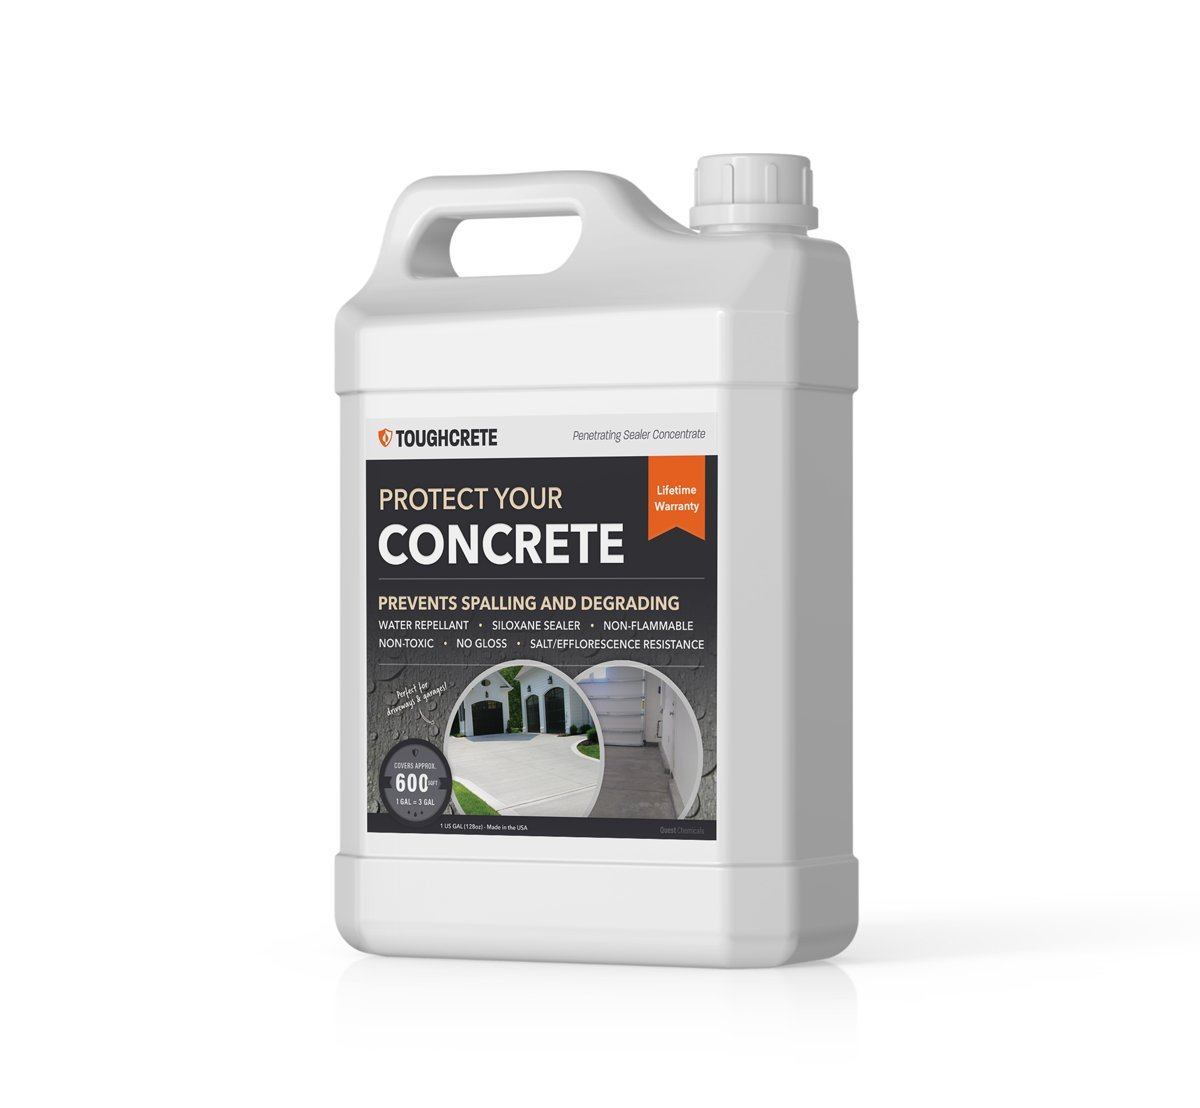 ToughCrete Concrete Sealer - 1 Gallon (Covers 600SqFt) - The #1 Sealant for Driveways, Garage Floors, Sidewalks, Patios, and Other Cocrete Surfaces